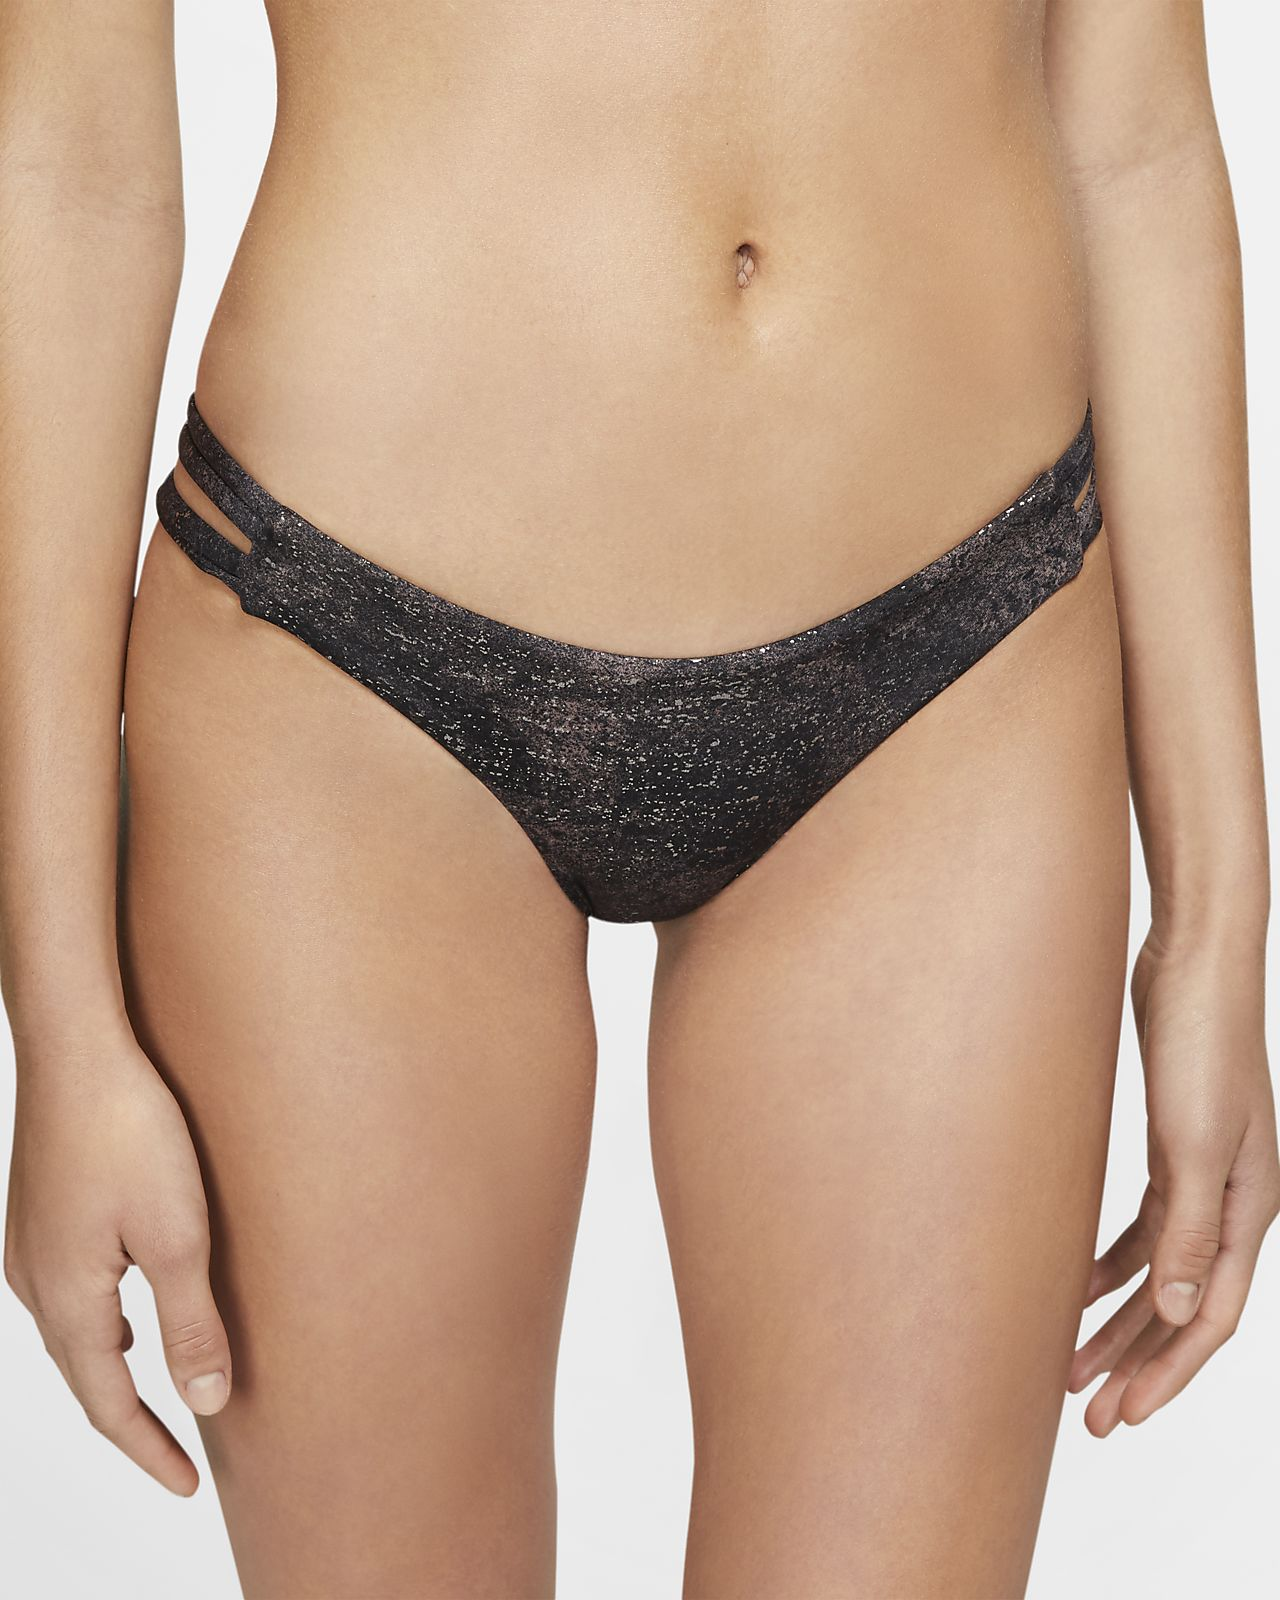 Hurley Quick Dry Max Luster Women's Surf Bottoms